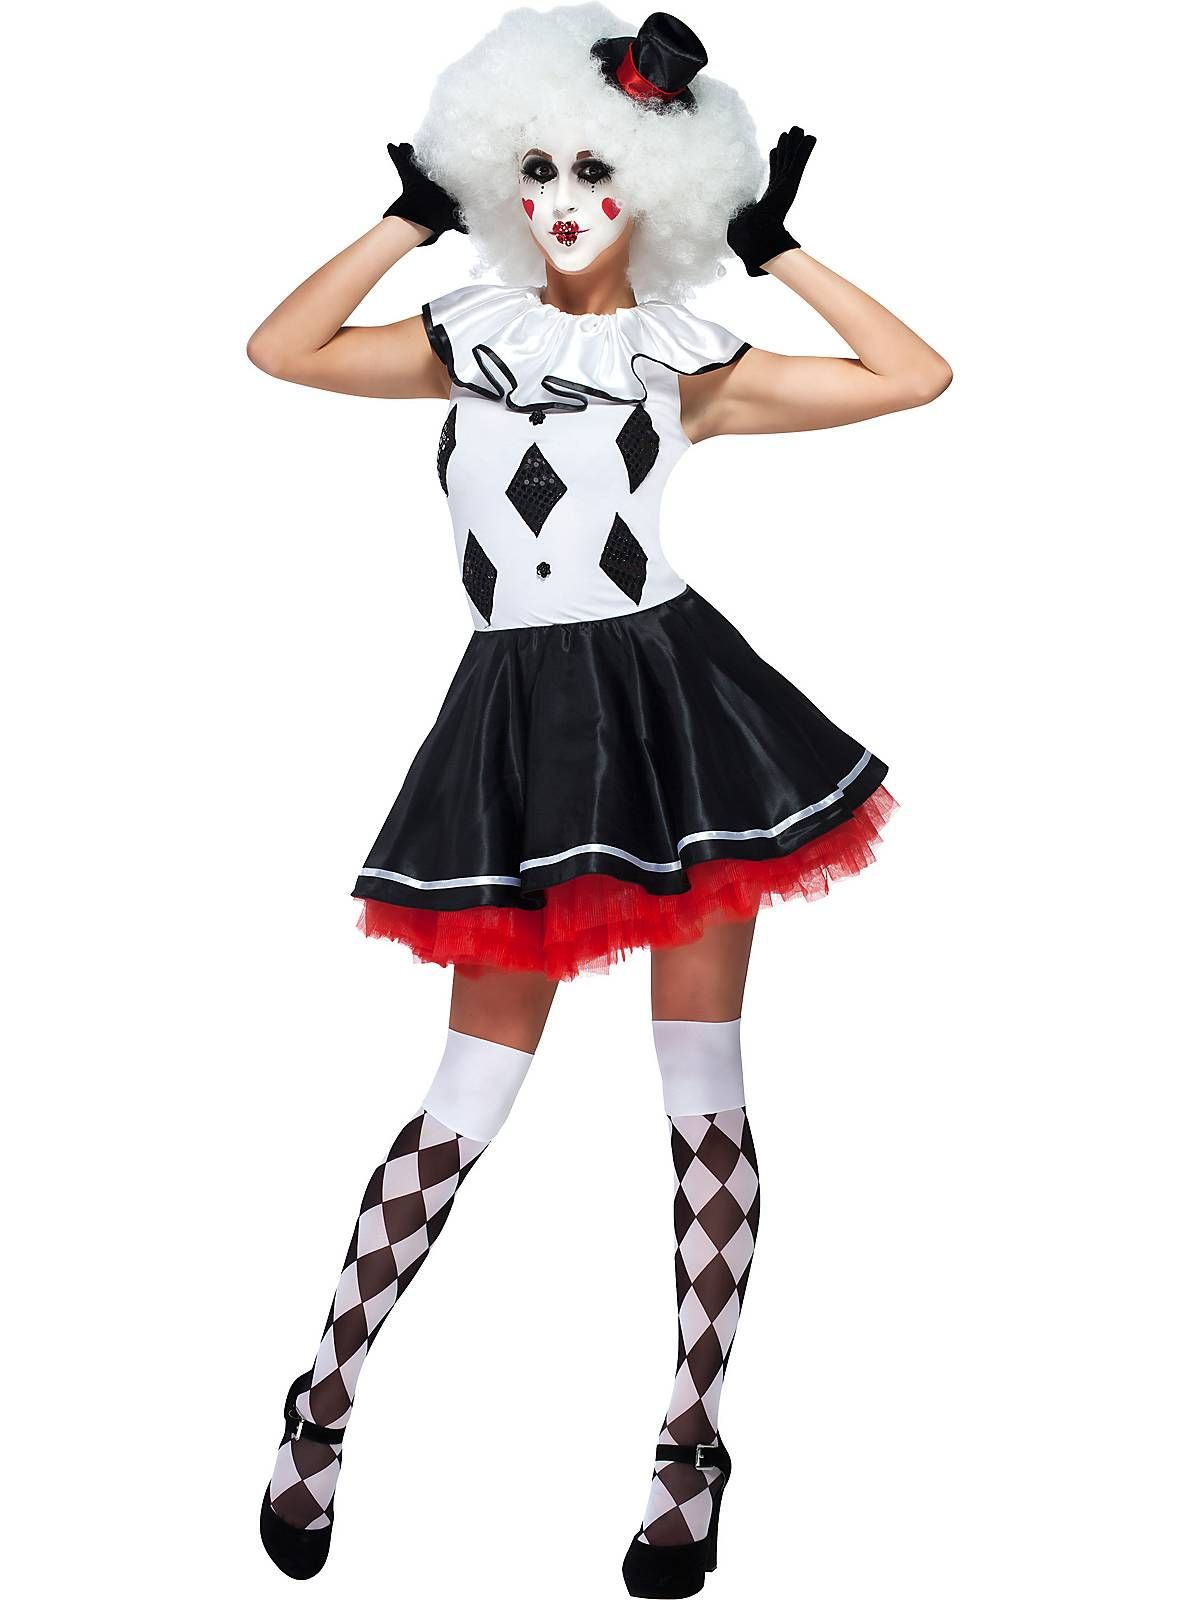 718f79fb2797 Womens Black and White Party Jester Harlequin Clown Costume